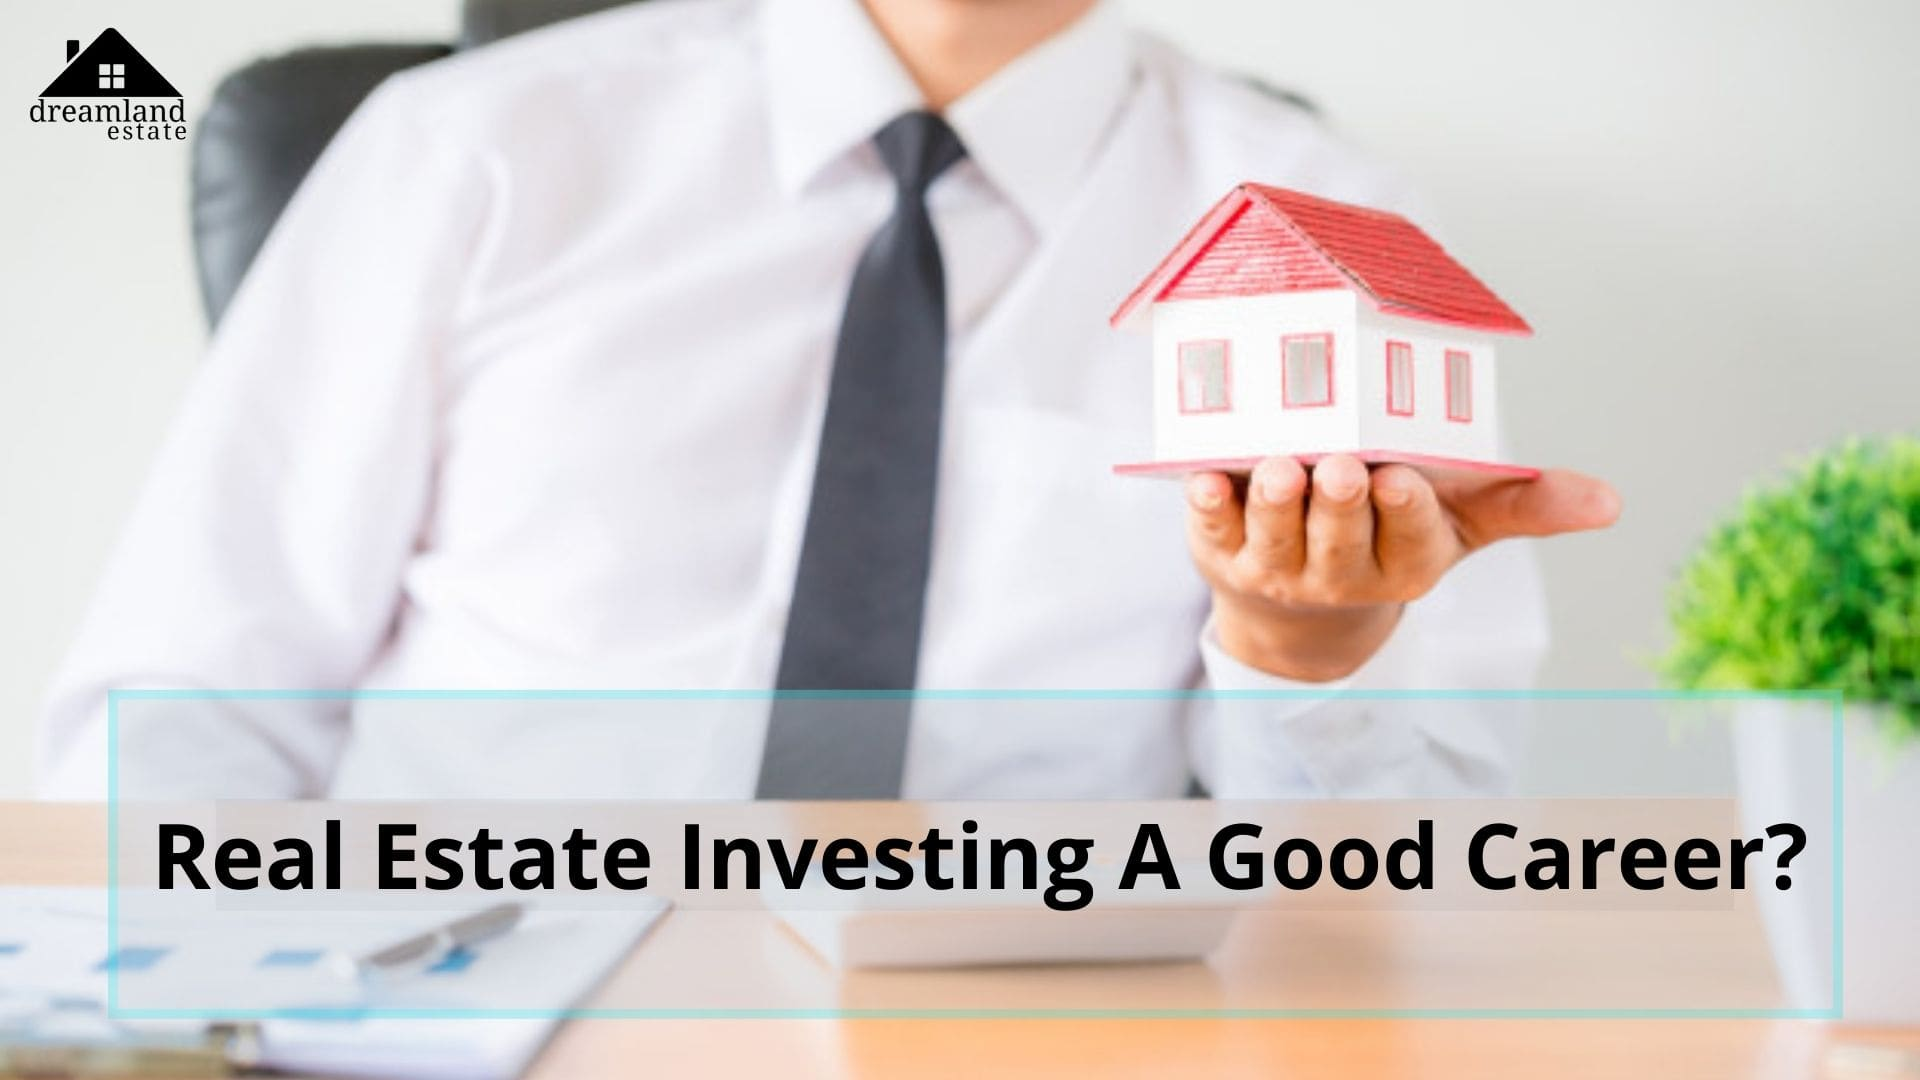 Is Real Estate Investing A Good Career